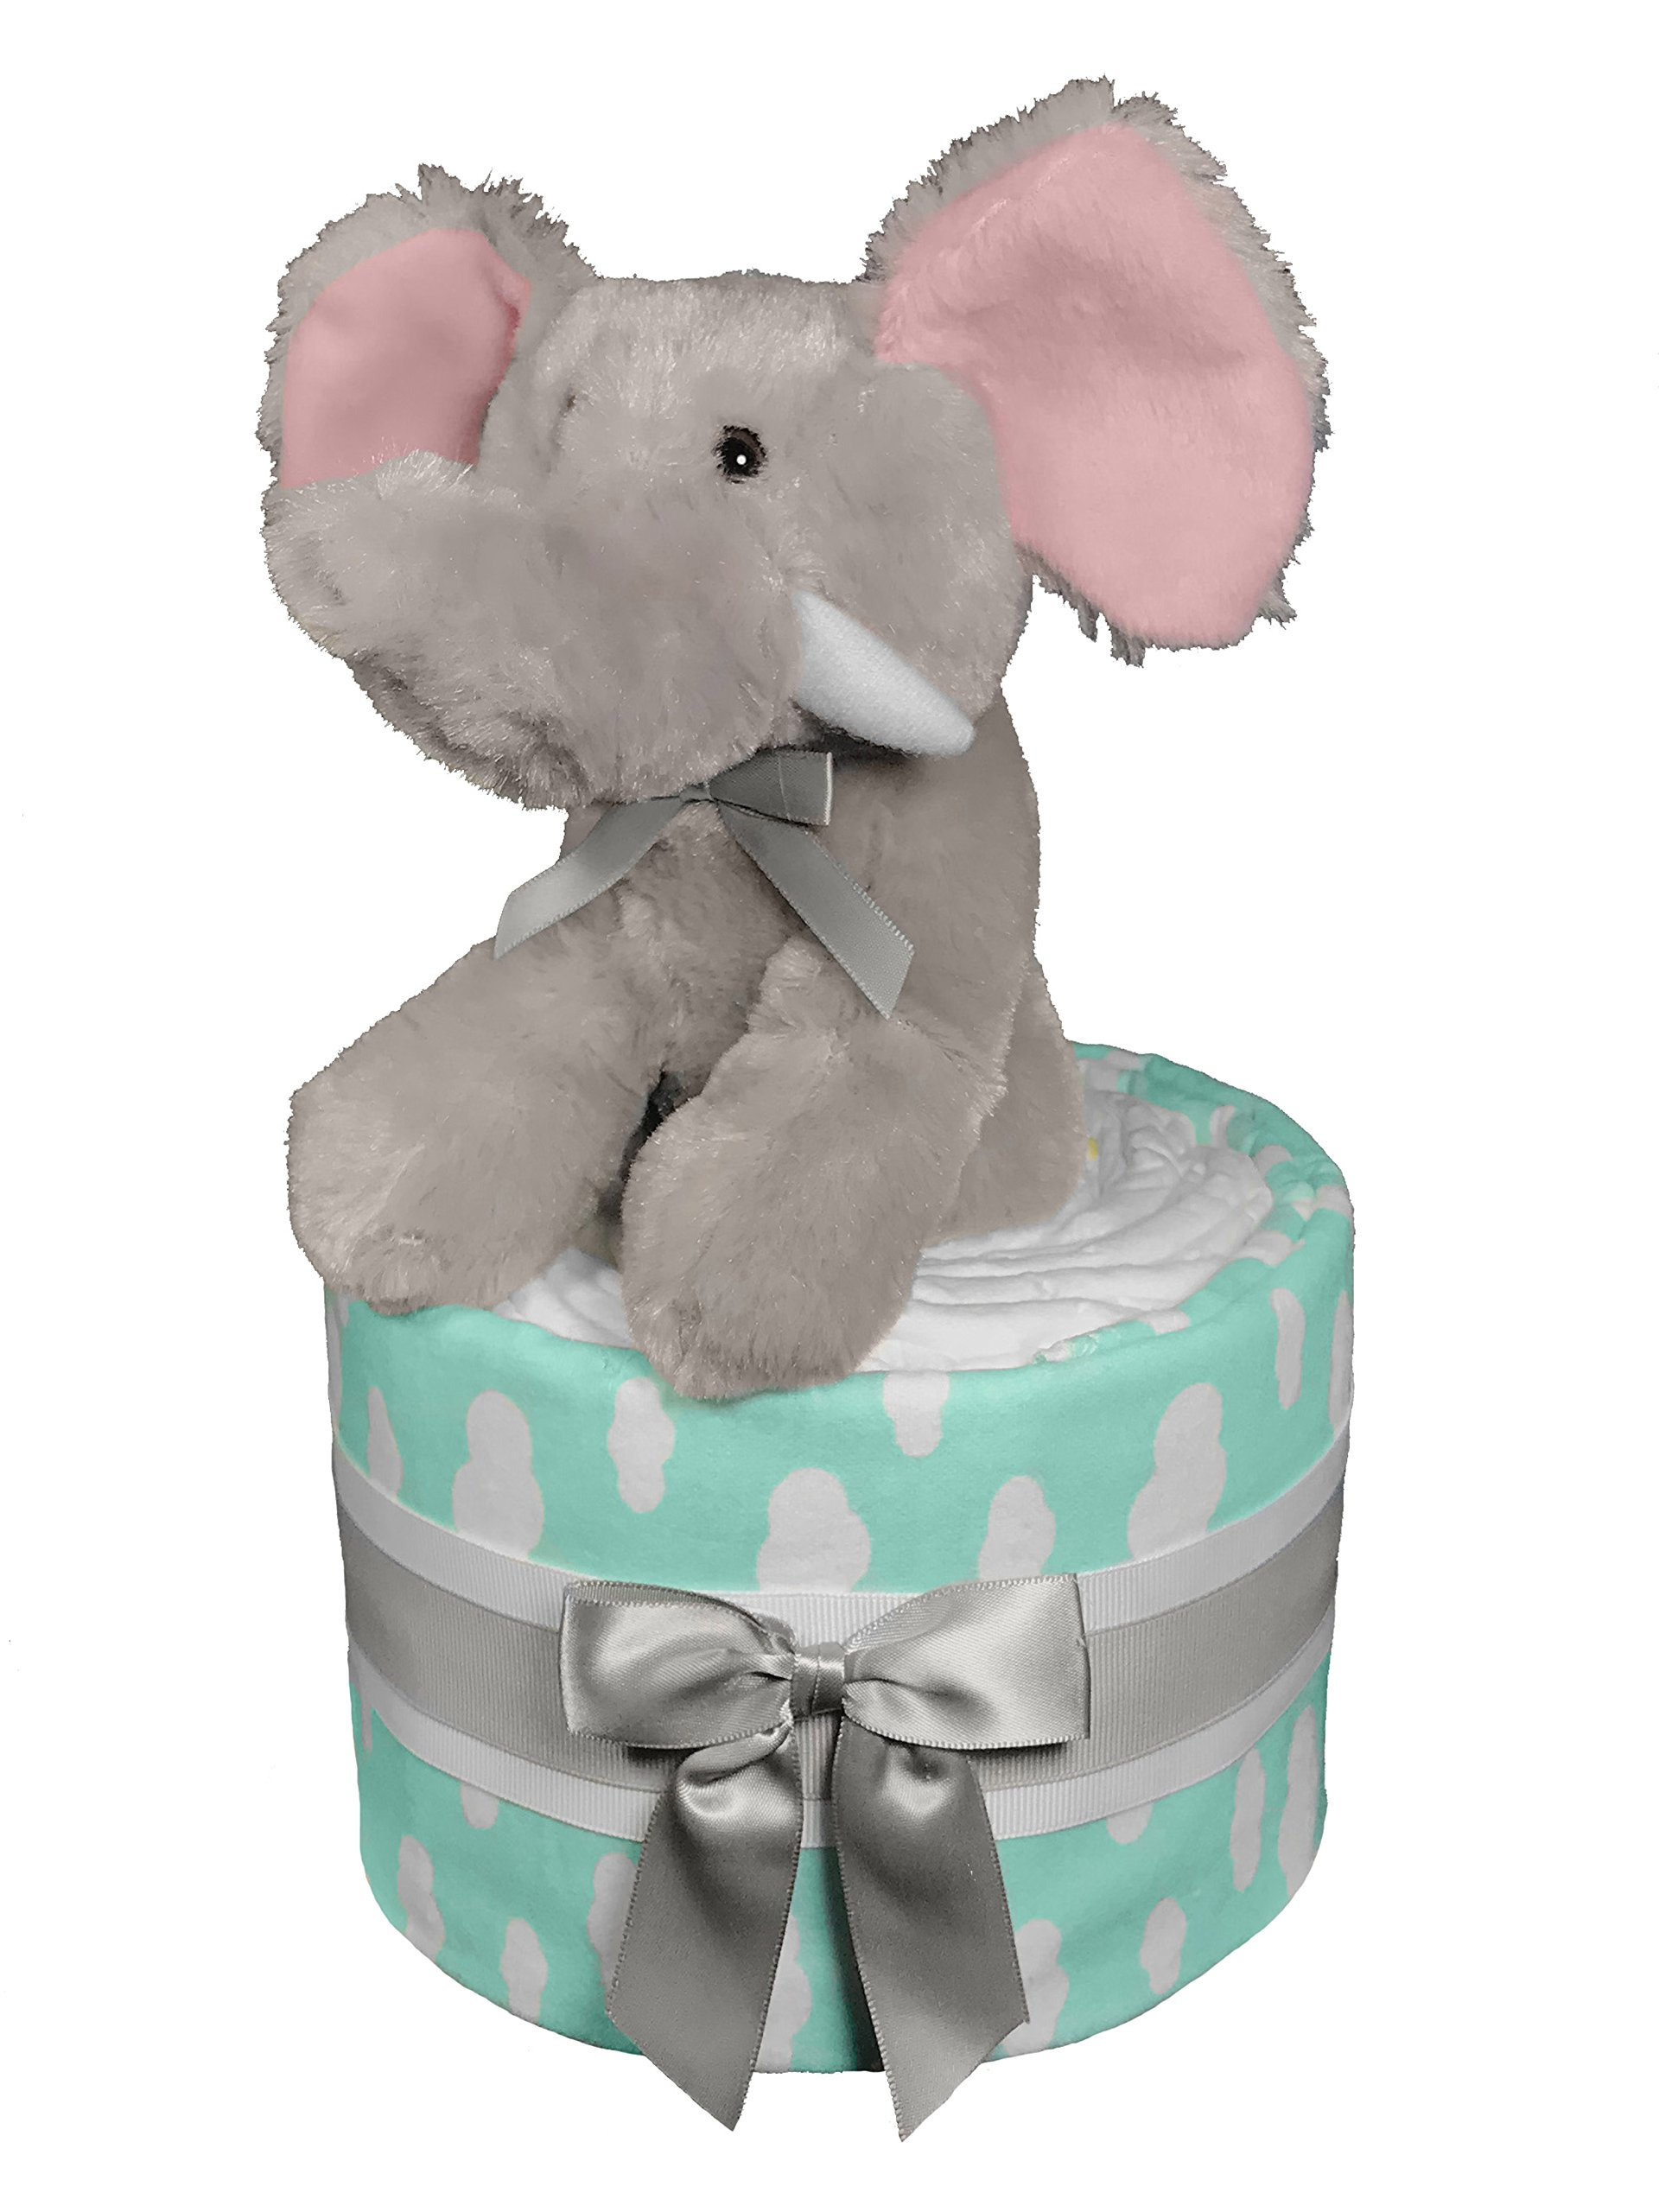 Elephant Diaper Cake for a Boy or Girl - Baby Shower Gift - Turquoise and Gray